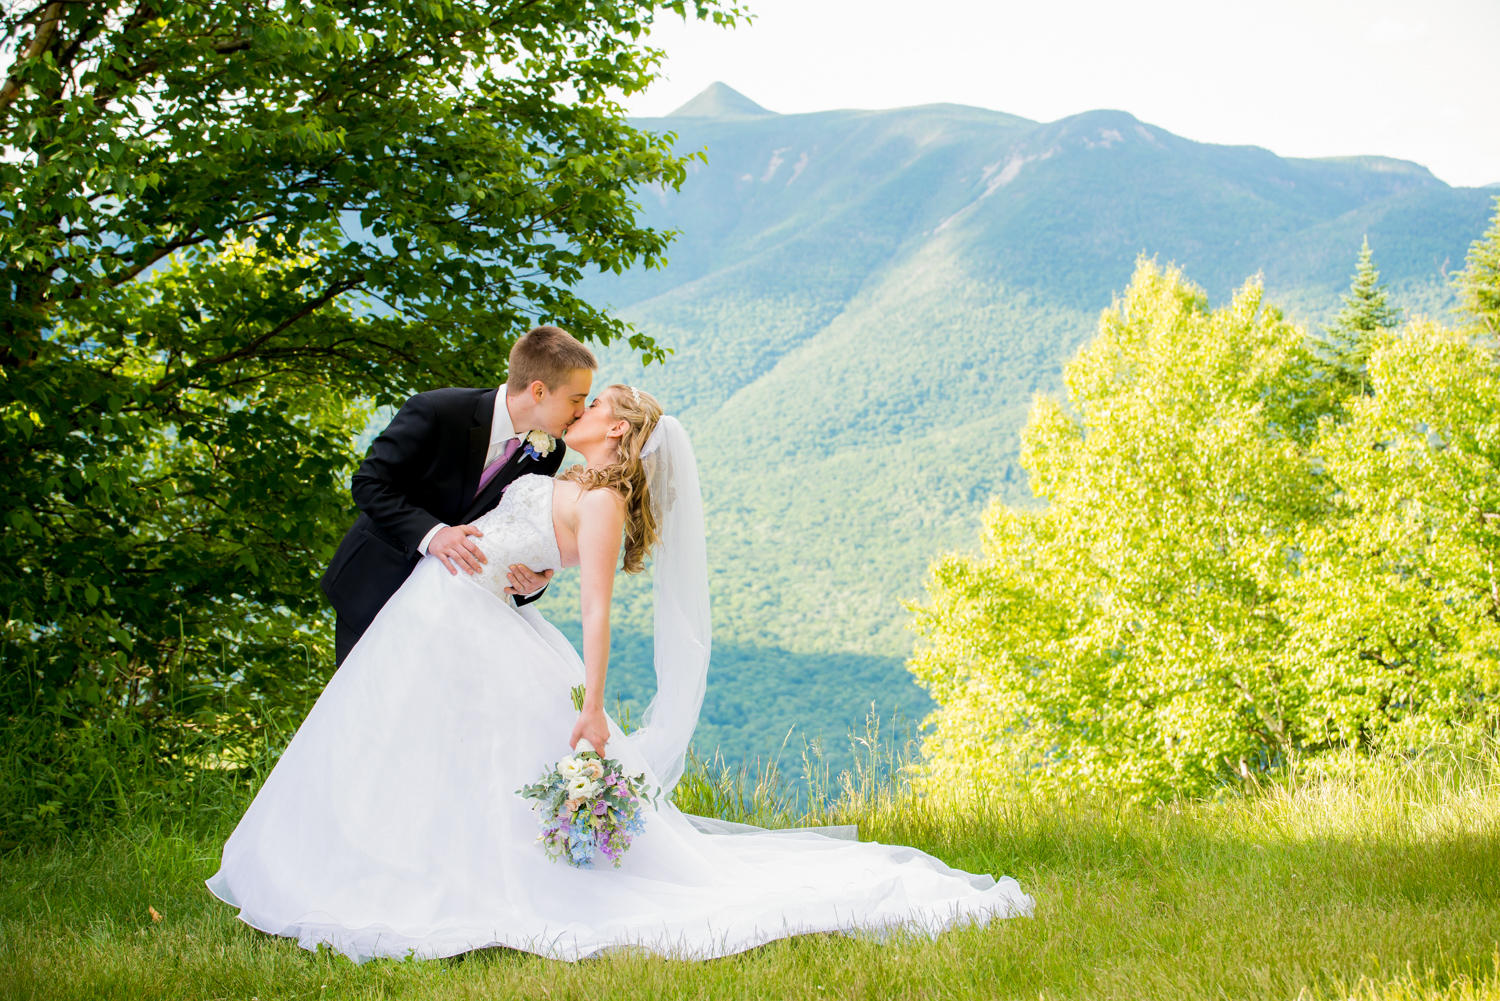 Kristin & Brian - Loon Mountain Wedding